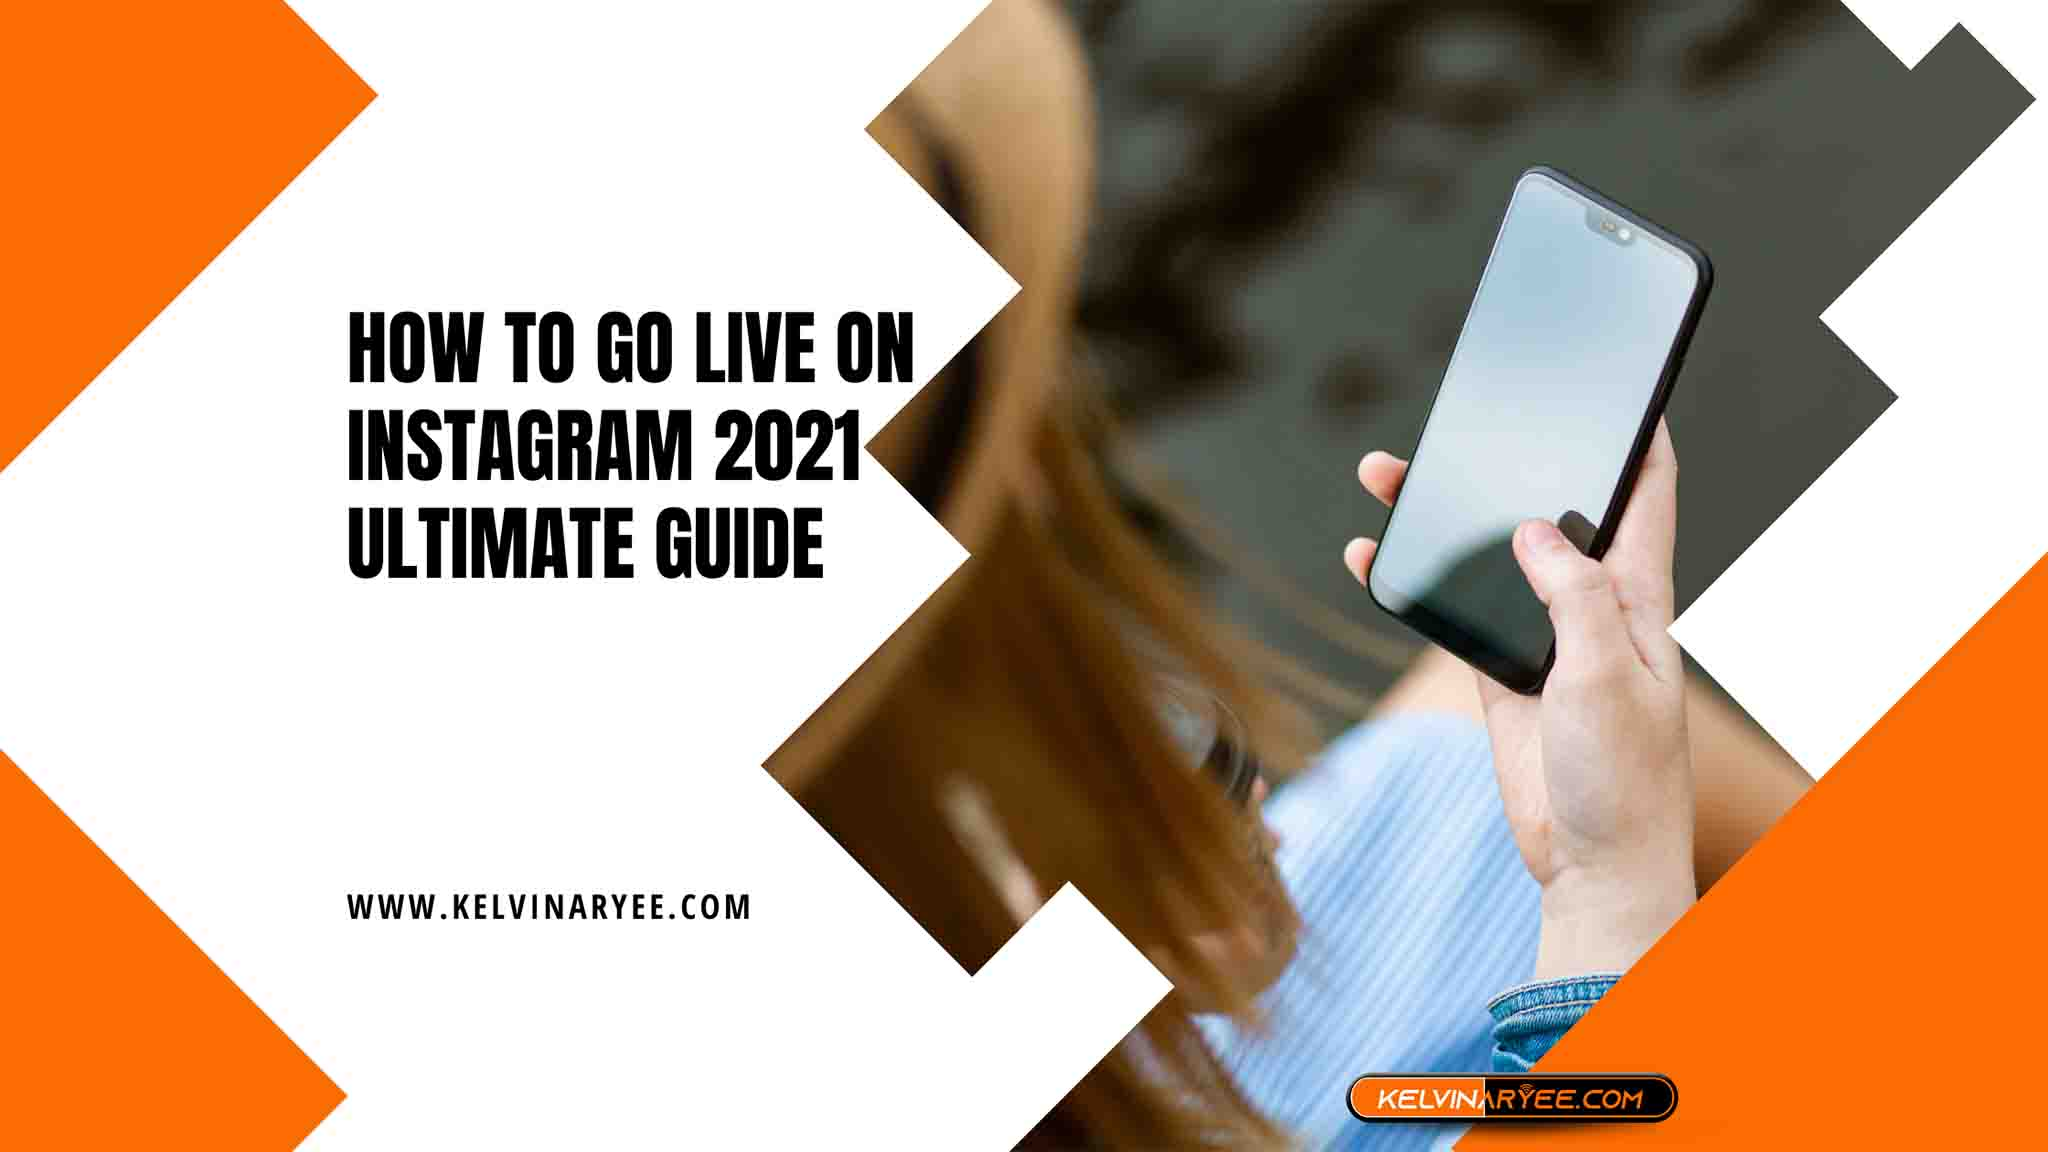 How to Go Live on Instagram 2021 Ultimate Guide